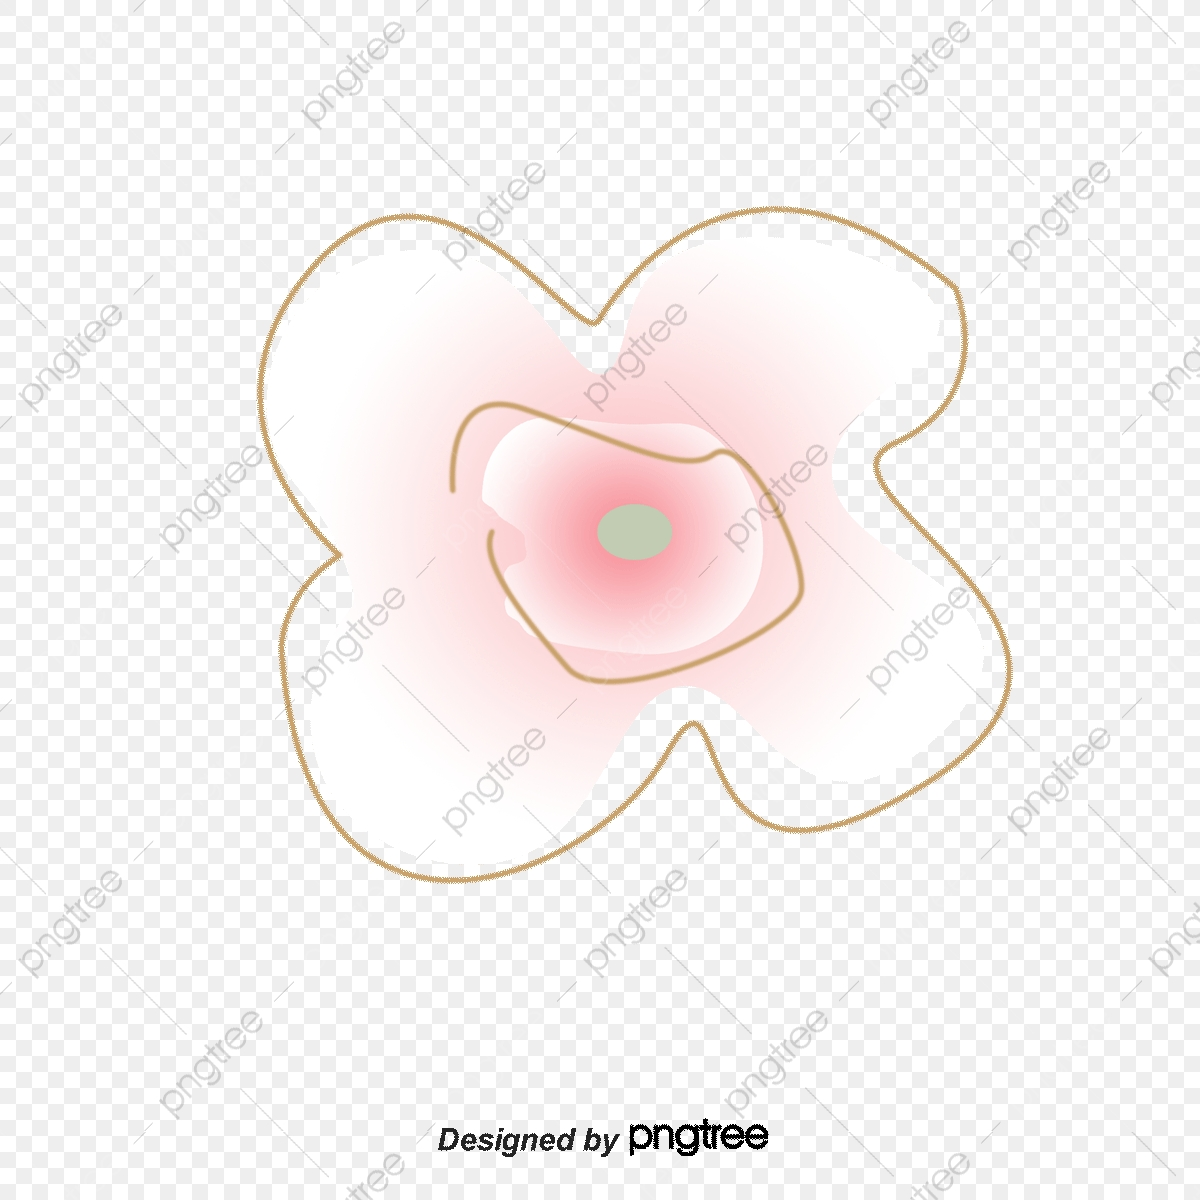 Kimono Vector Png Images Japanese Kimono Kimono Girl Kimono Short Dress Vectors In Ai Eps Format Free Download On Pngtree